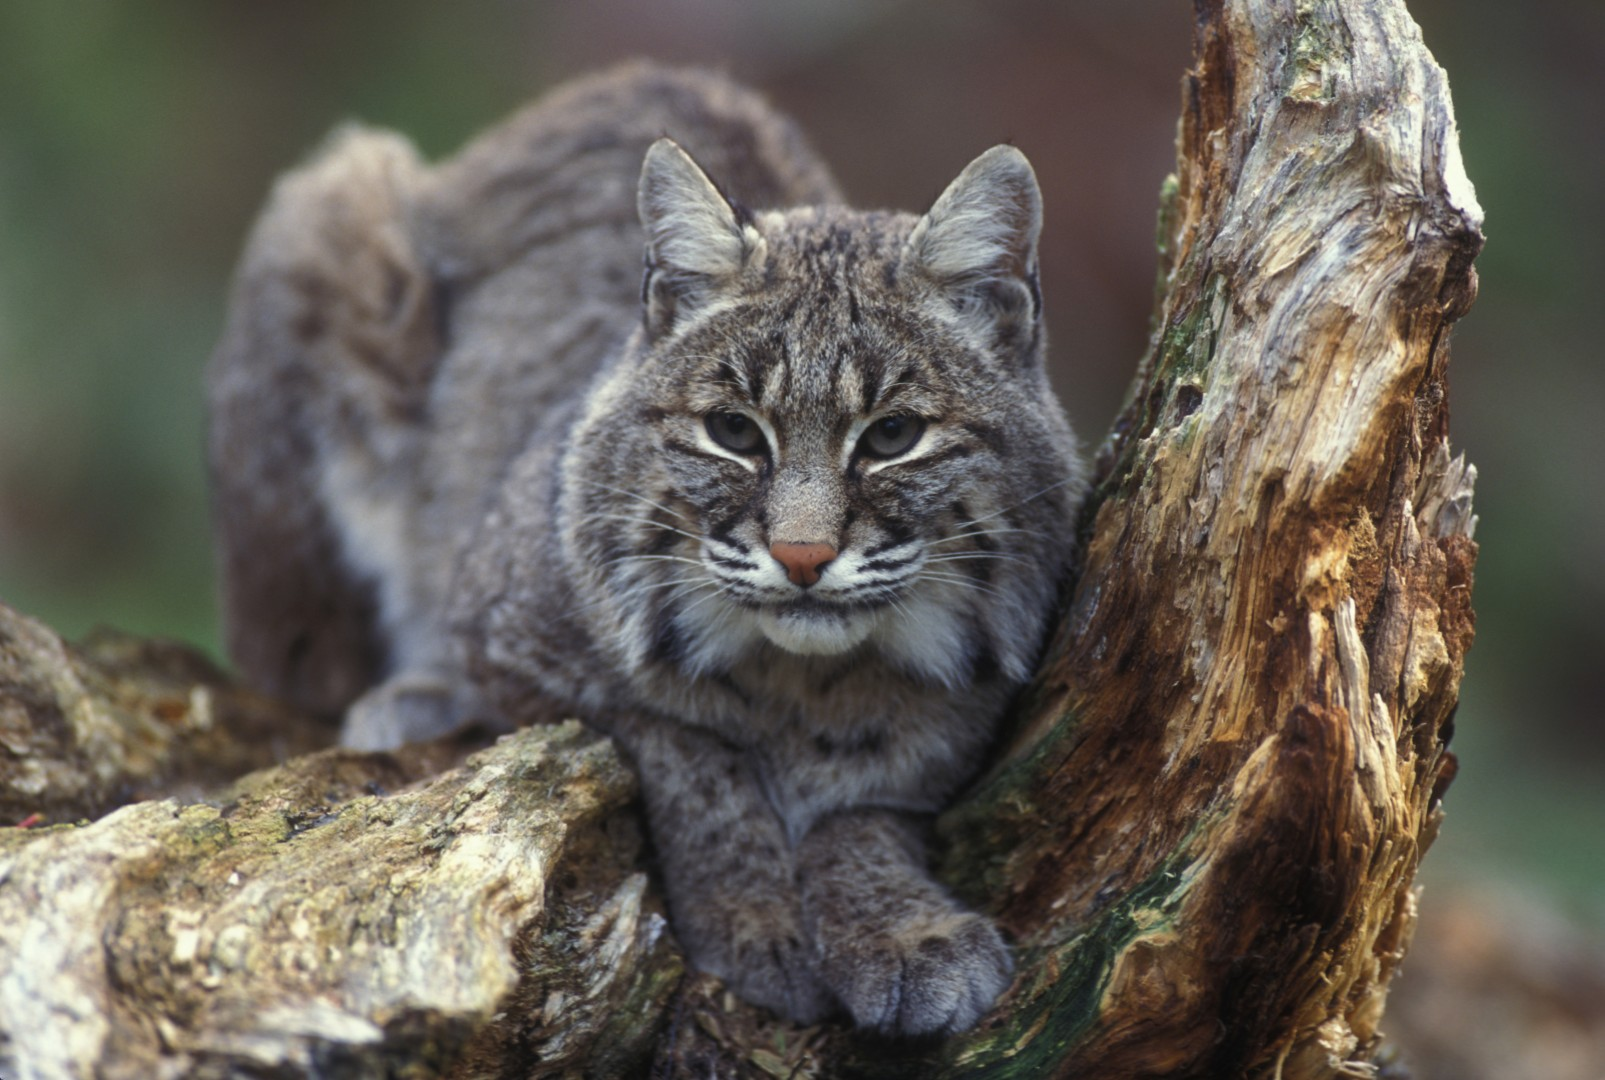 Bobcat in a tree, Utah, July 13, 2012 | Photo courtesy of Gary Kramer and the U.S. Fish and Wildlife Service, St. George News